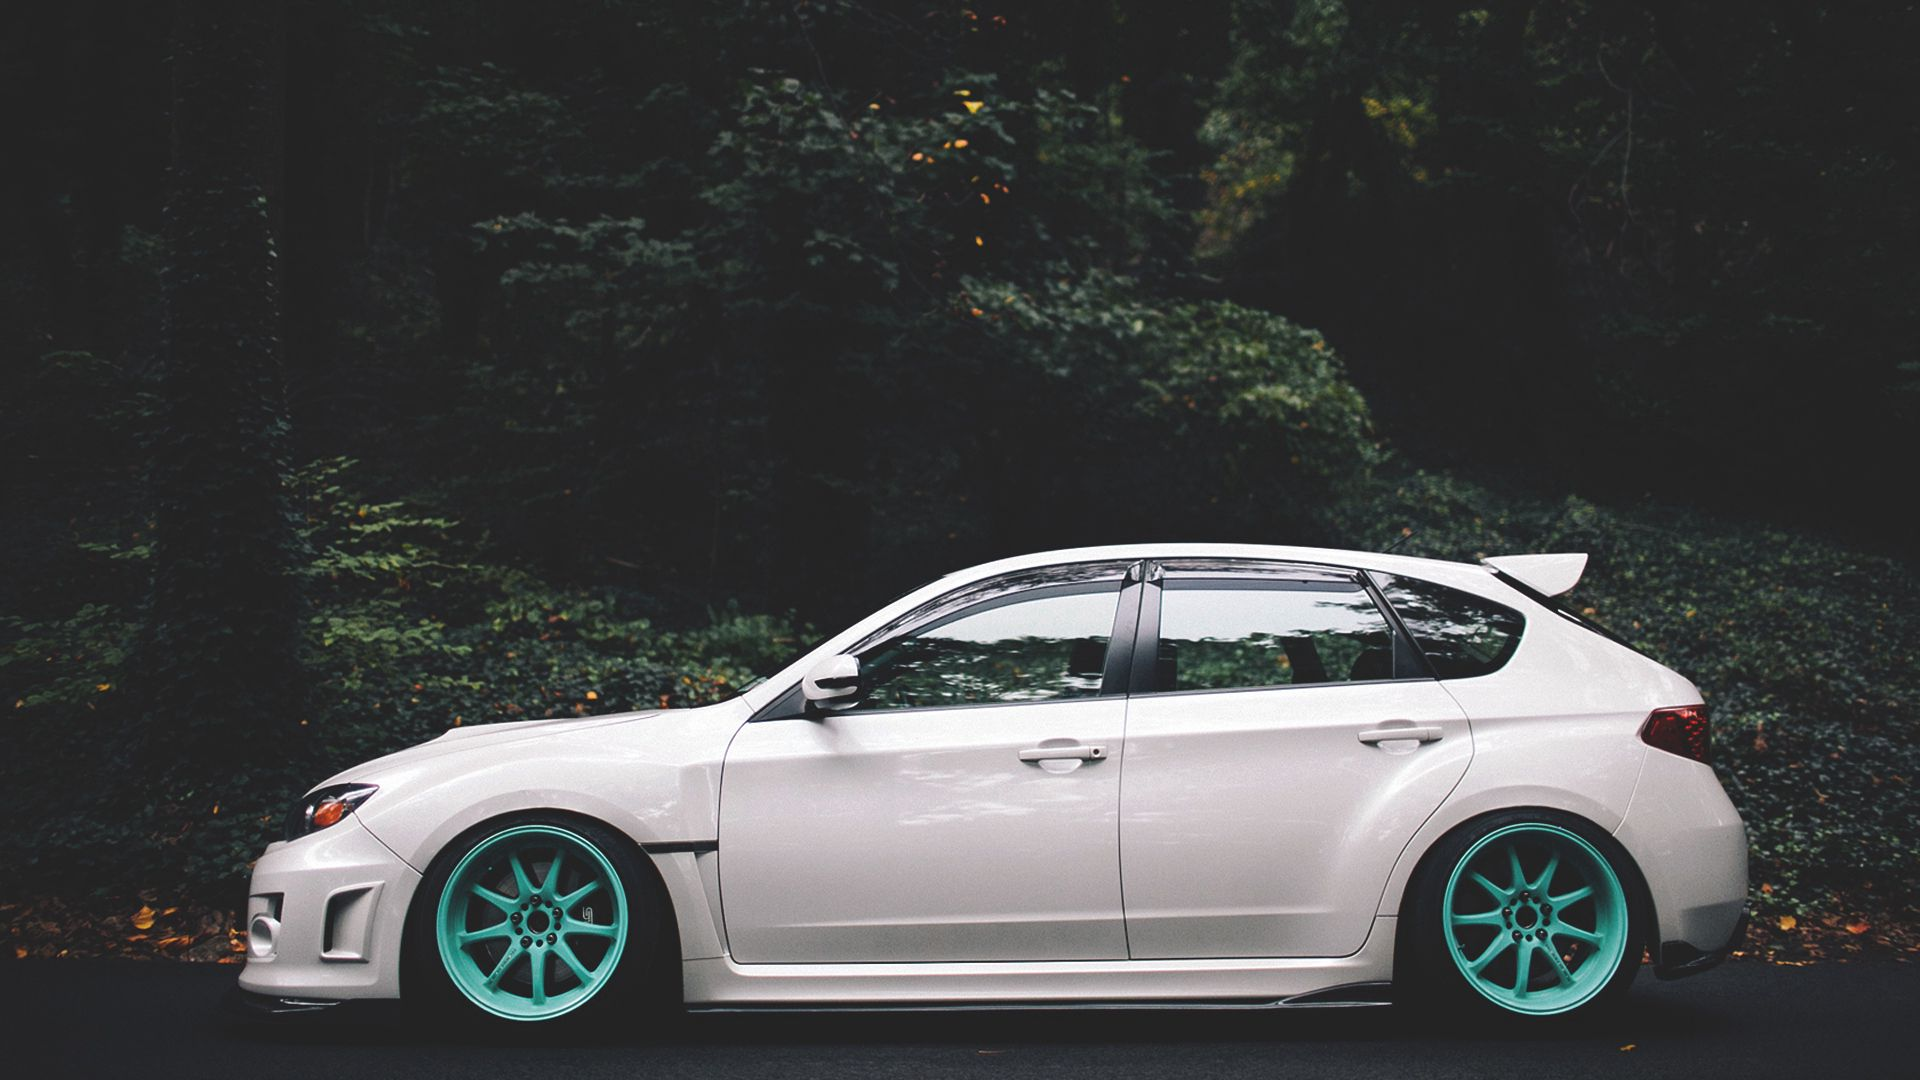 74814 download wallpaper Subaru, Cars, Side View, Drives, Disks, Impreza screensavers and pictures for free